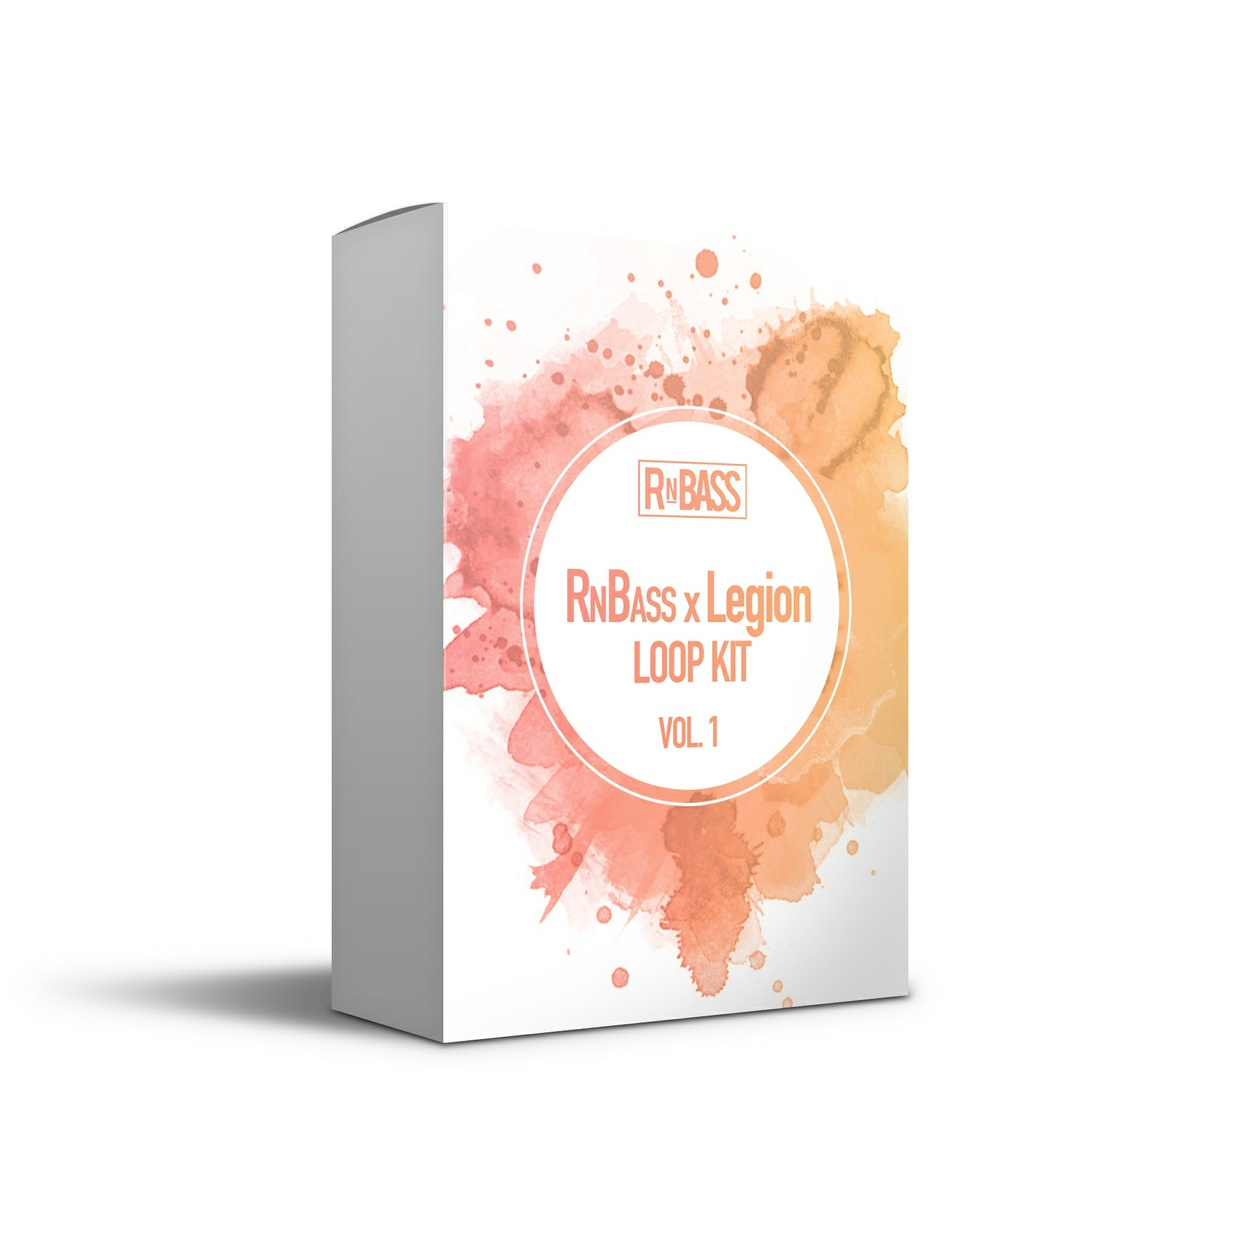 RnBass x Legion Loop Kit Vol. 1